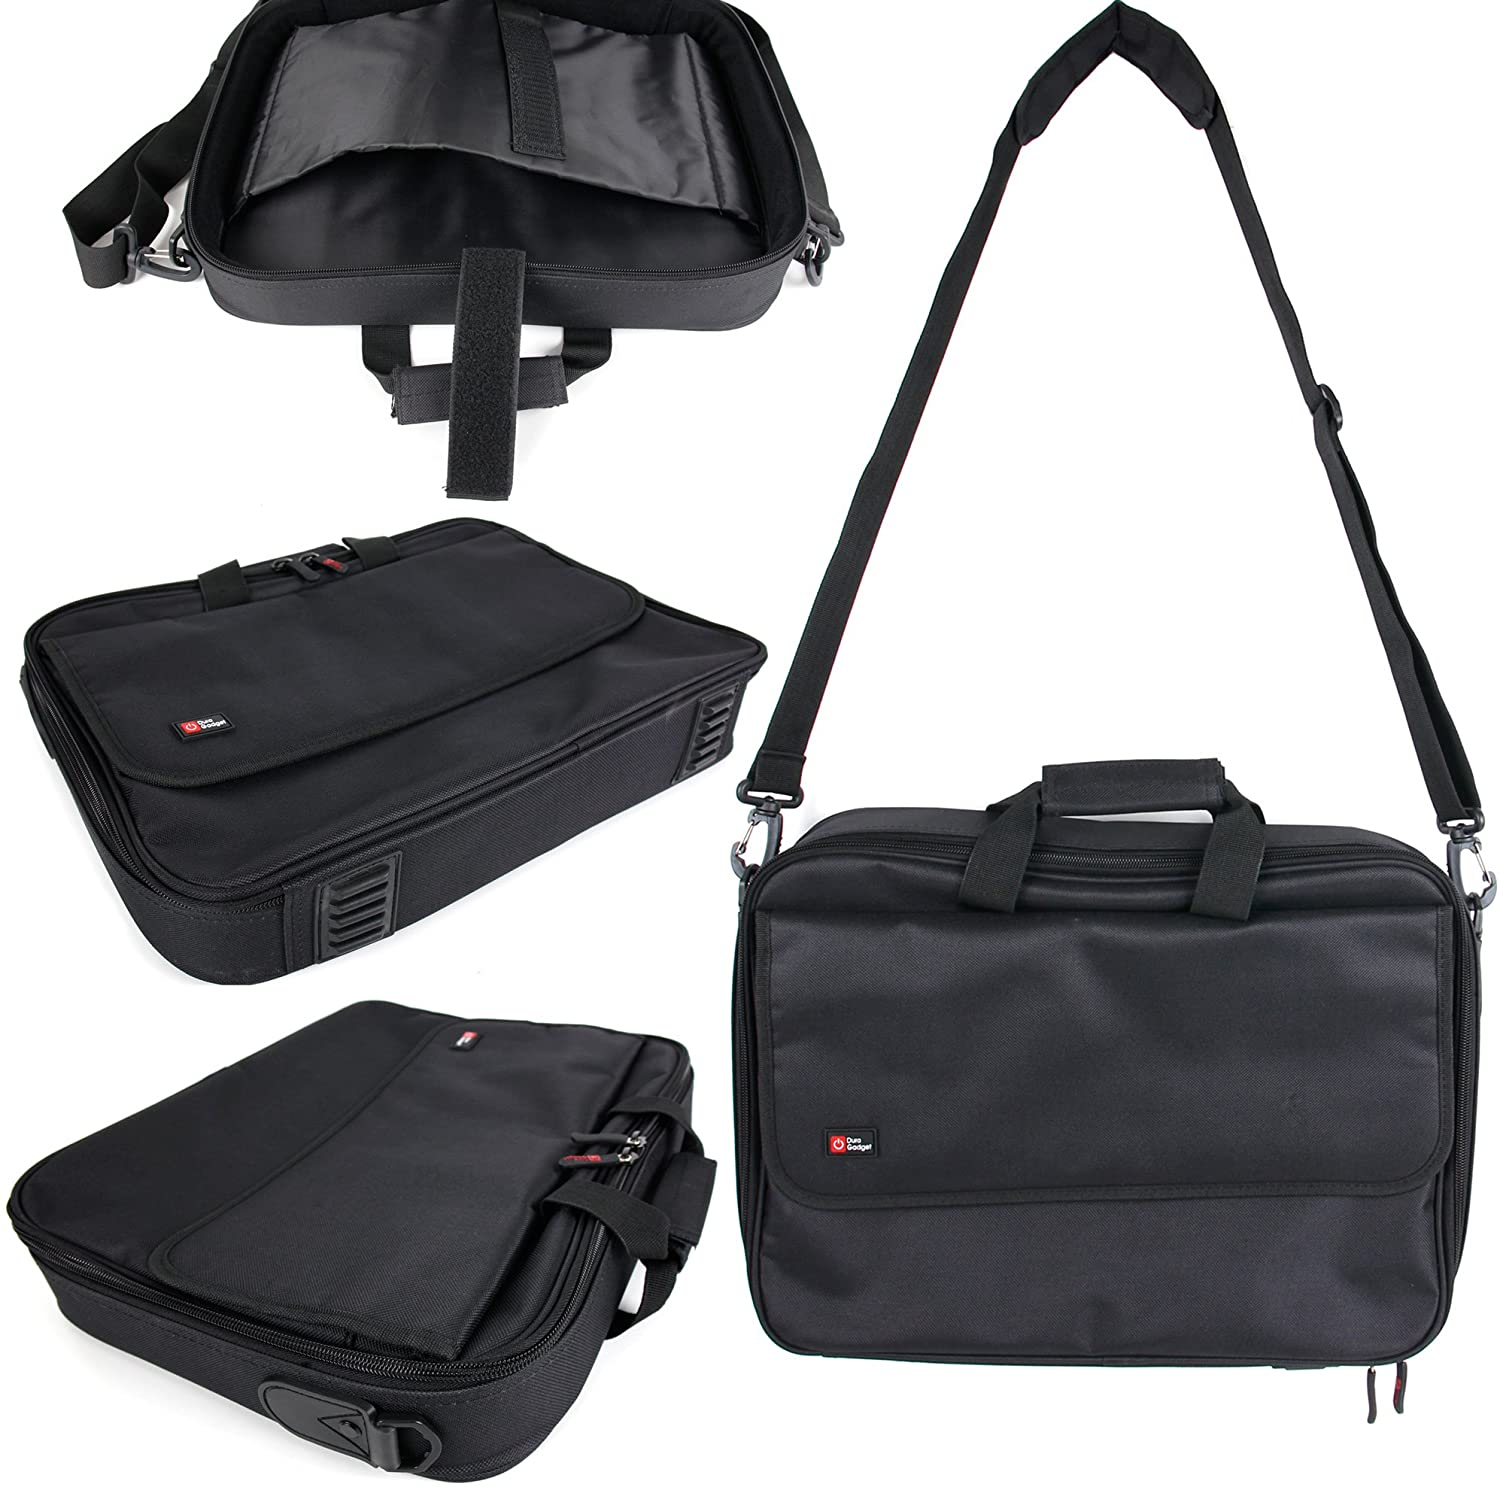 DURAGADGET Black Laptop Briefcase w/Multiple Compartments - Compatible with HP 355 G2 & 350 G1